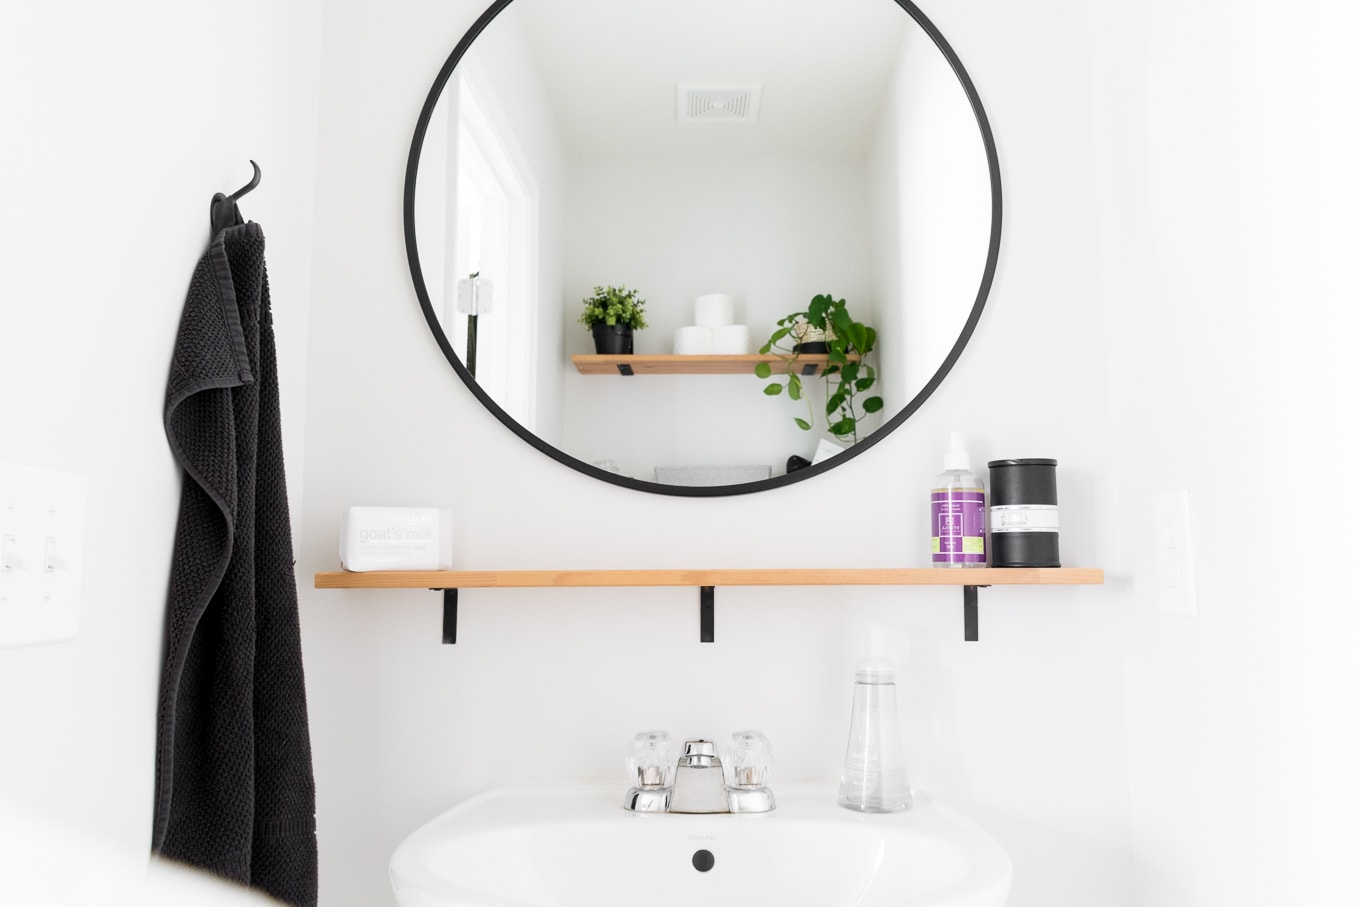 Tiny monochrome powder room with plants, open shelving for storage, a pedestal sink, and a round mirror #diy#monochrome #modern #scandi #scandistyle